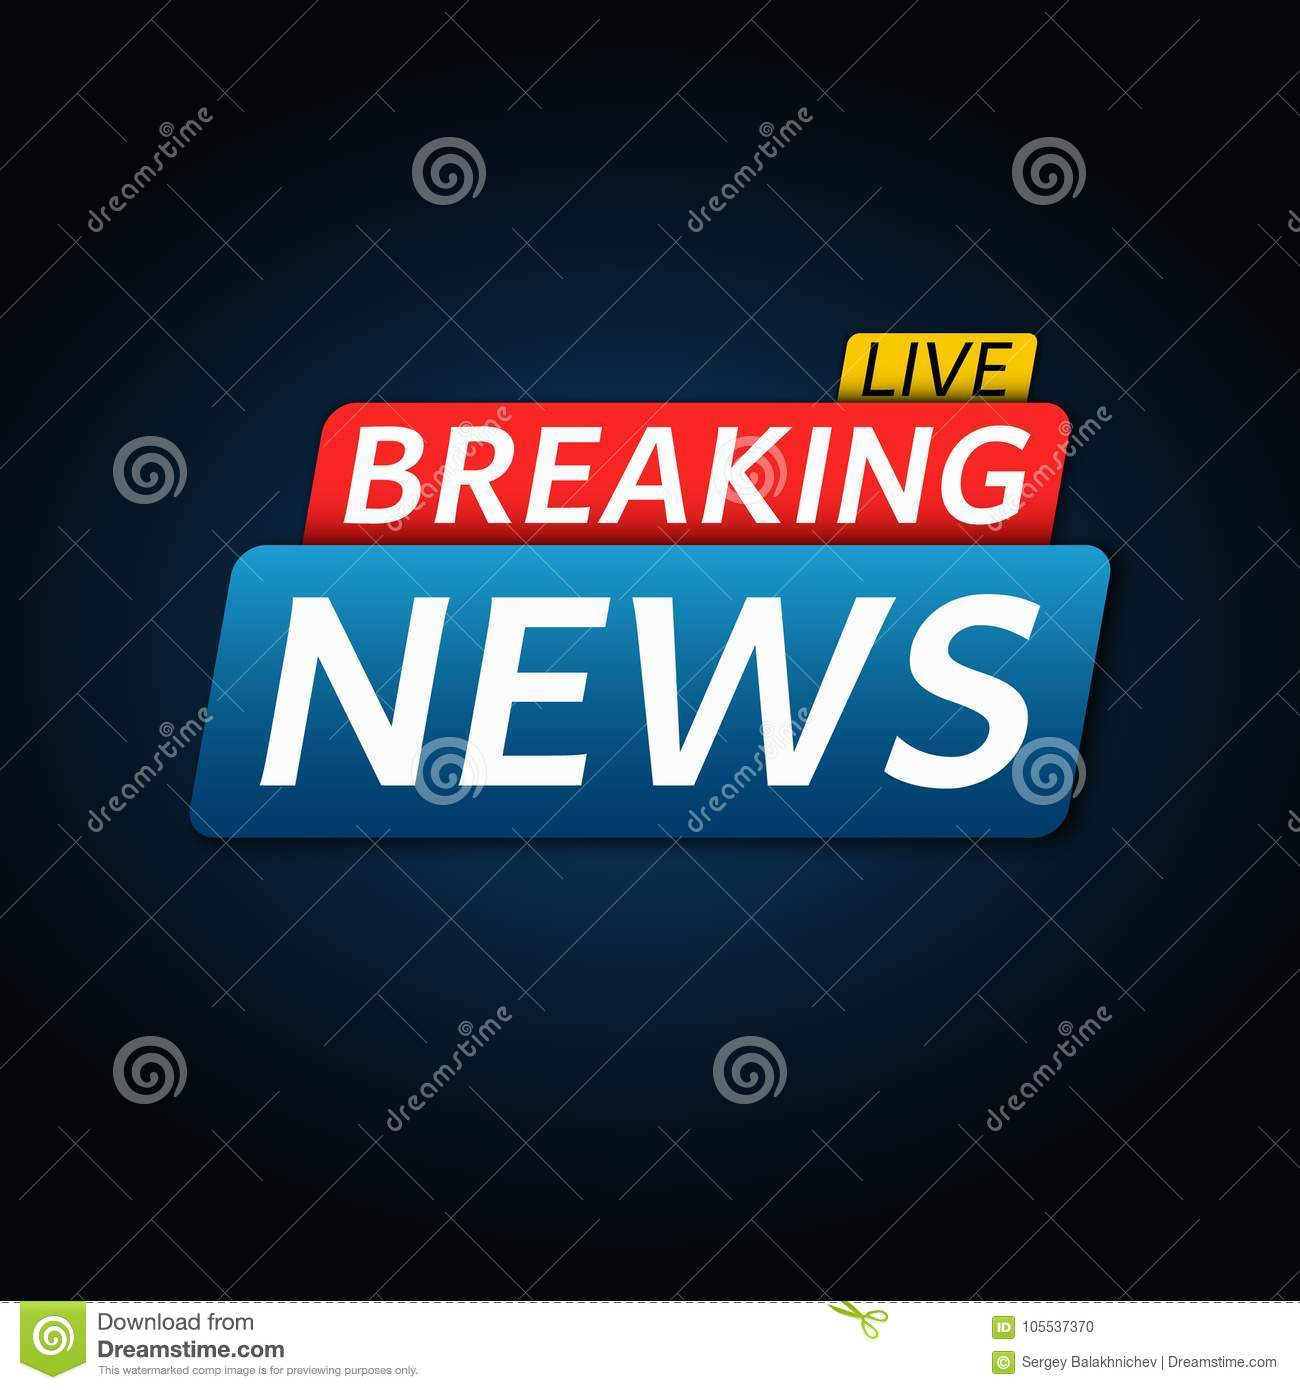 Download Breaking News Live Abstract Red Blue Banner With White Text Dark Background